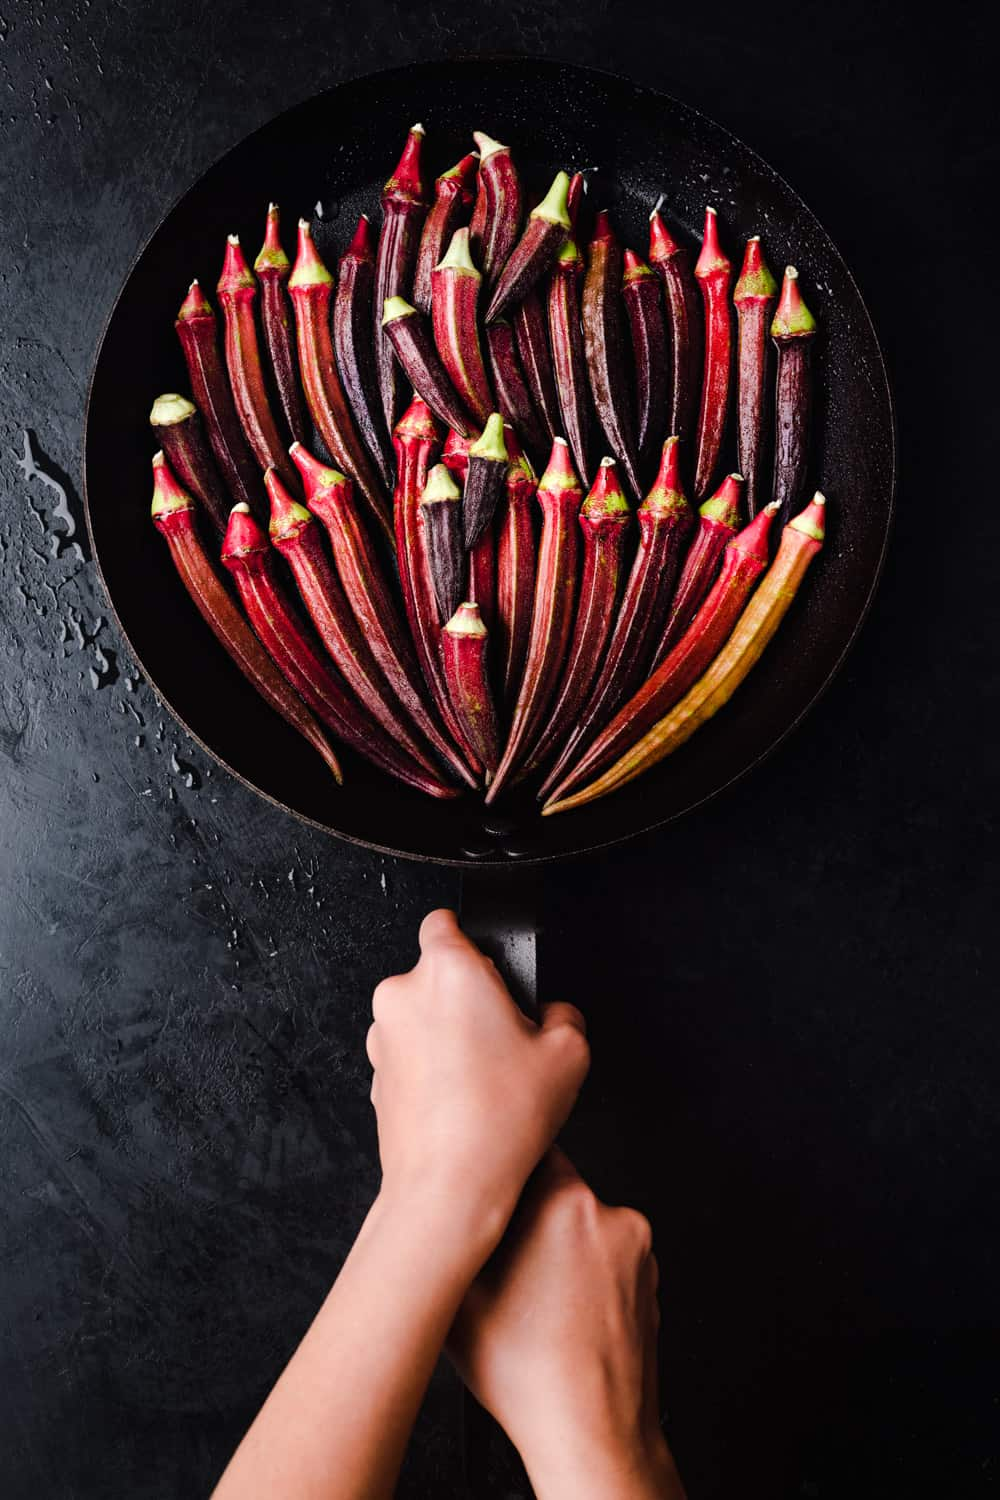 Big plan pan filled with red okra; Daniela Gerson's hands in frame holding pan; overhead shot.